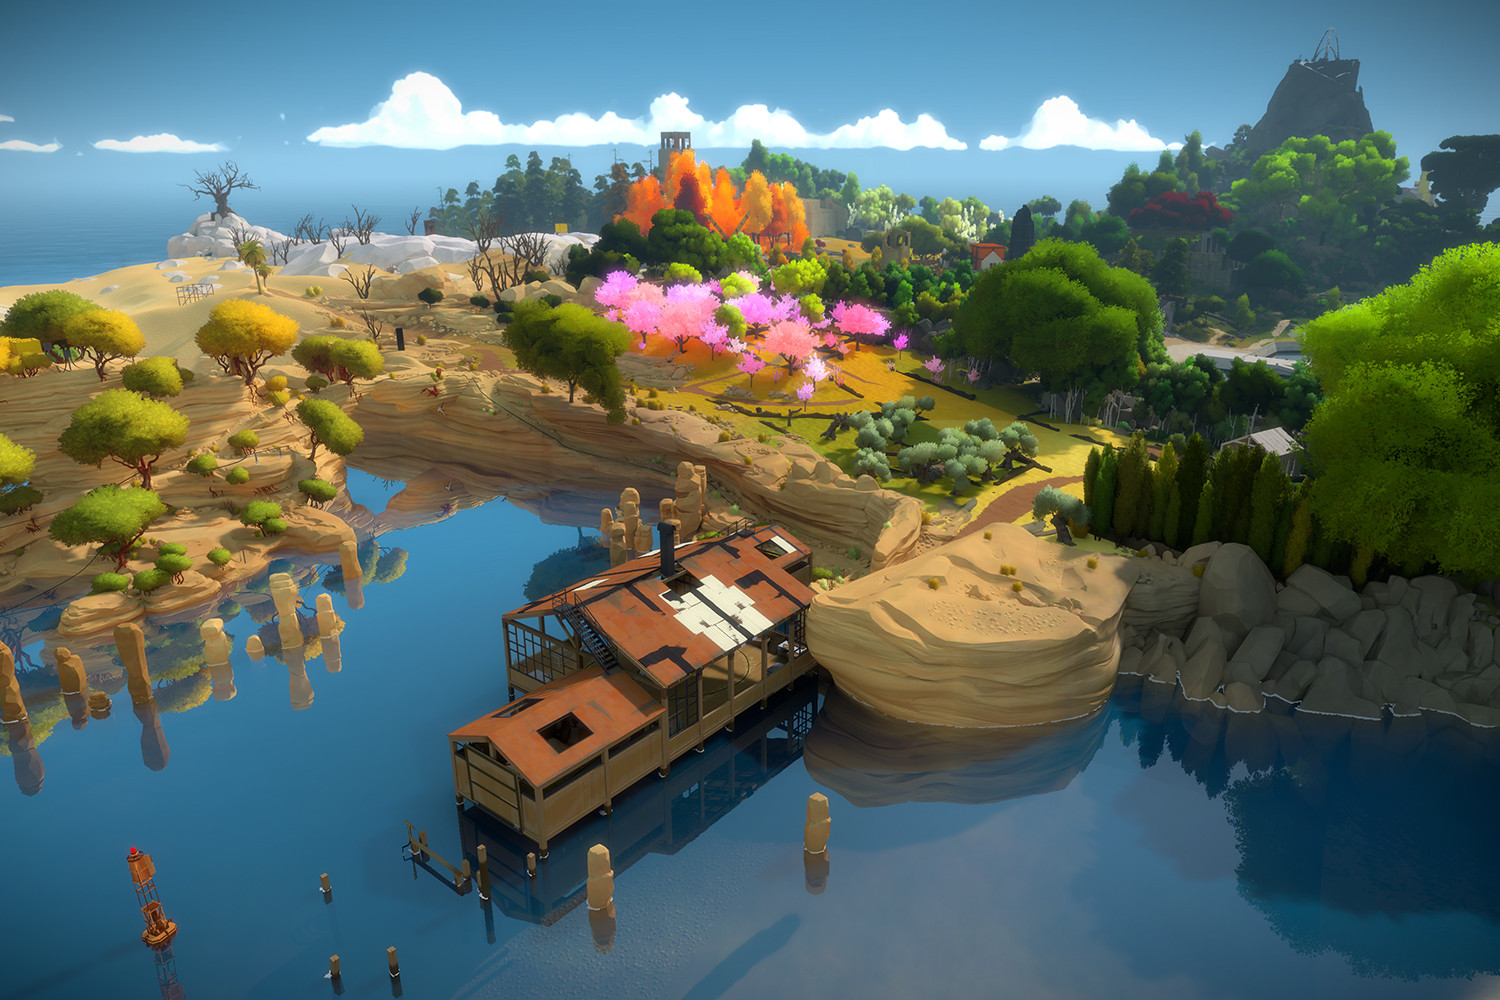 'The Witness' is coming to Xbox One sooner than you think